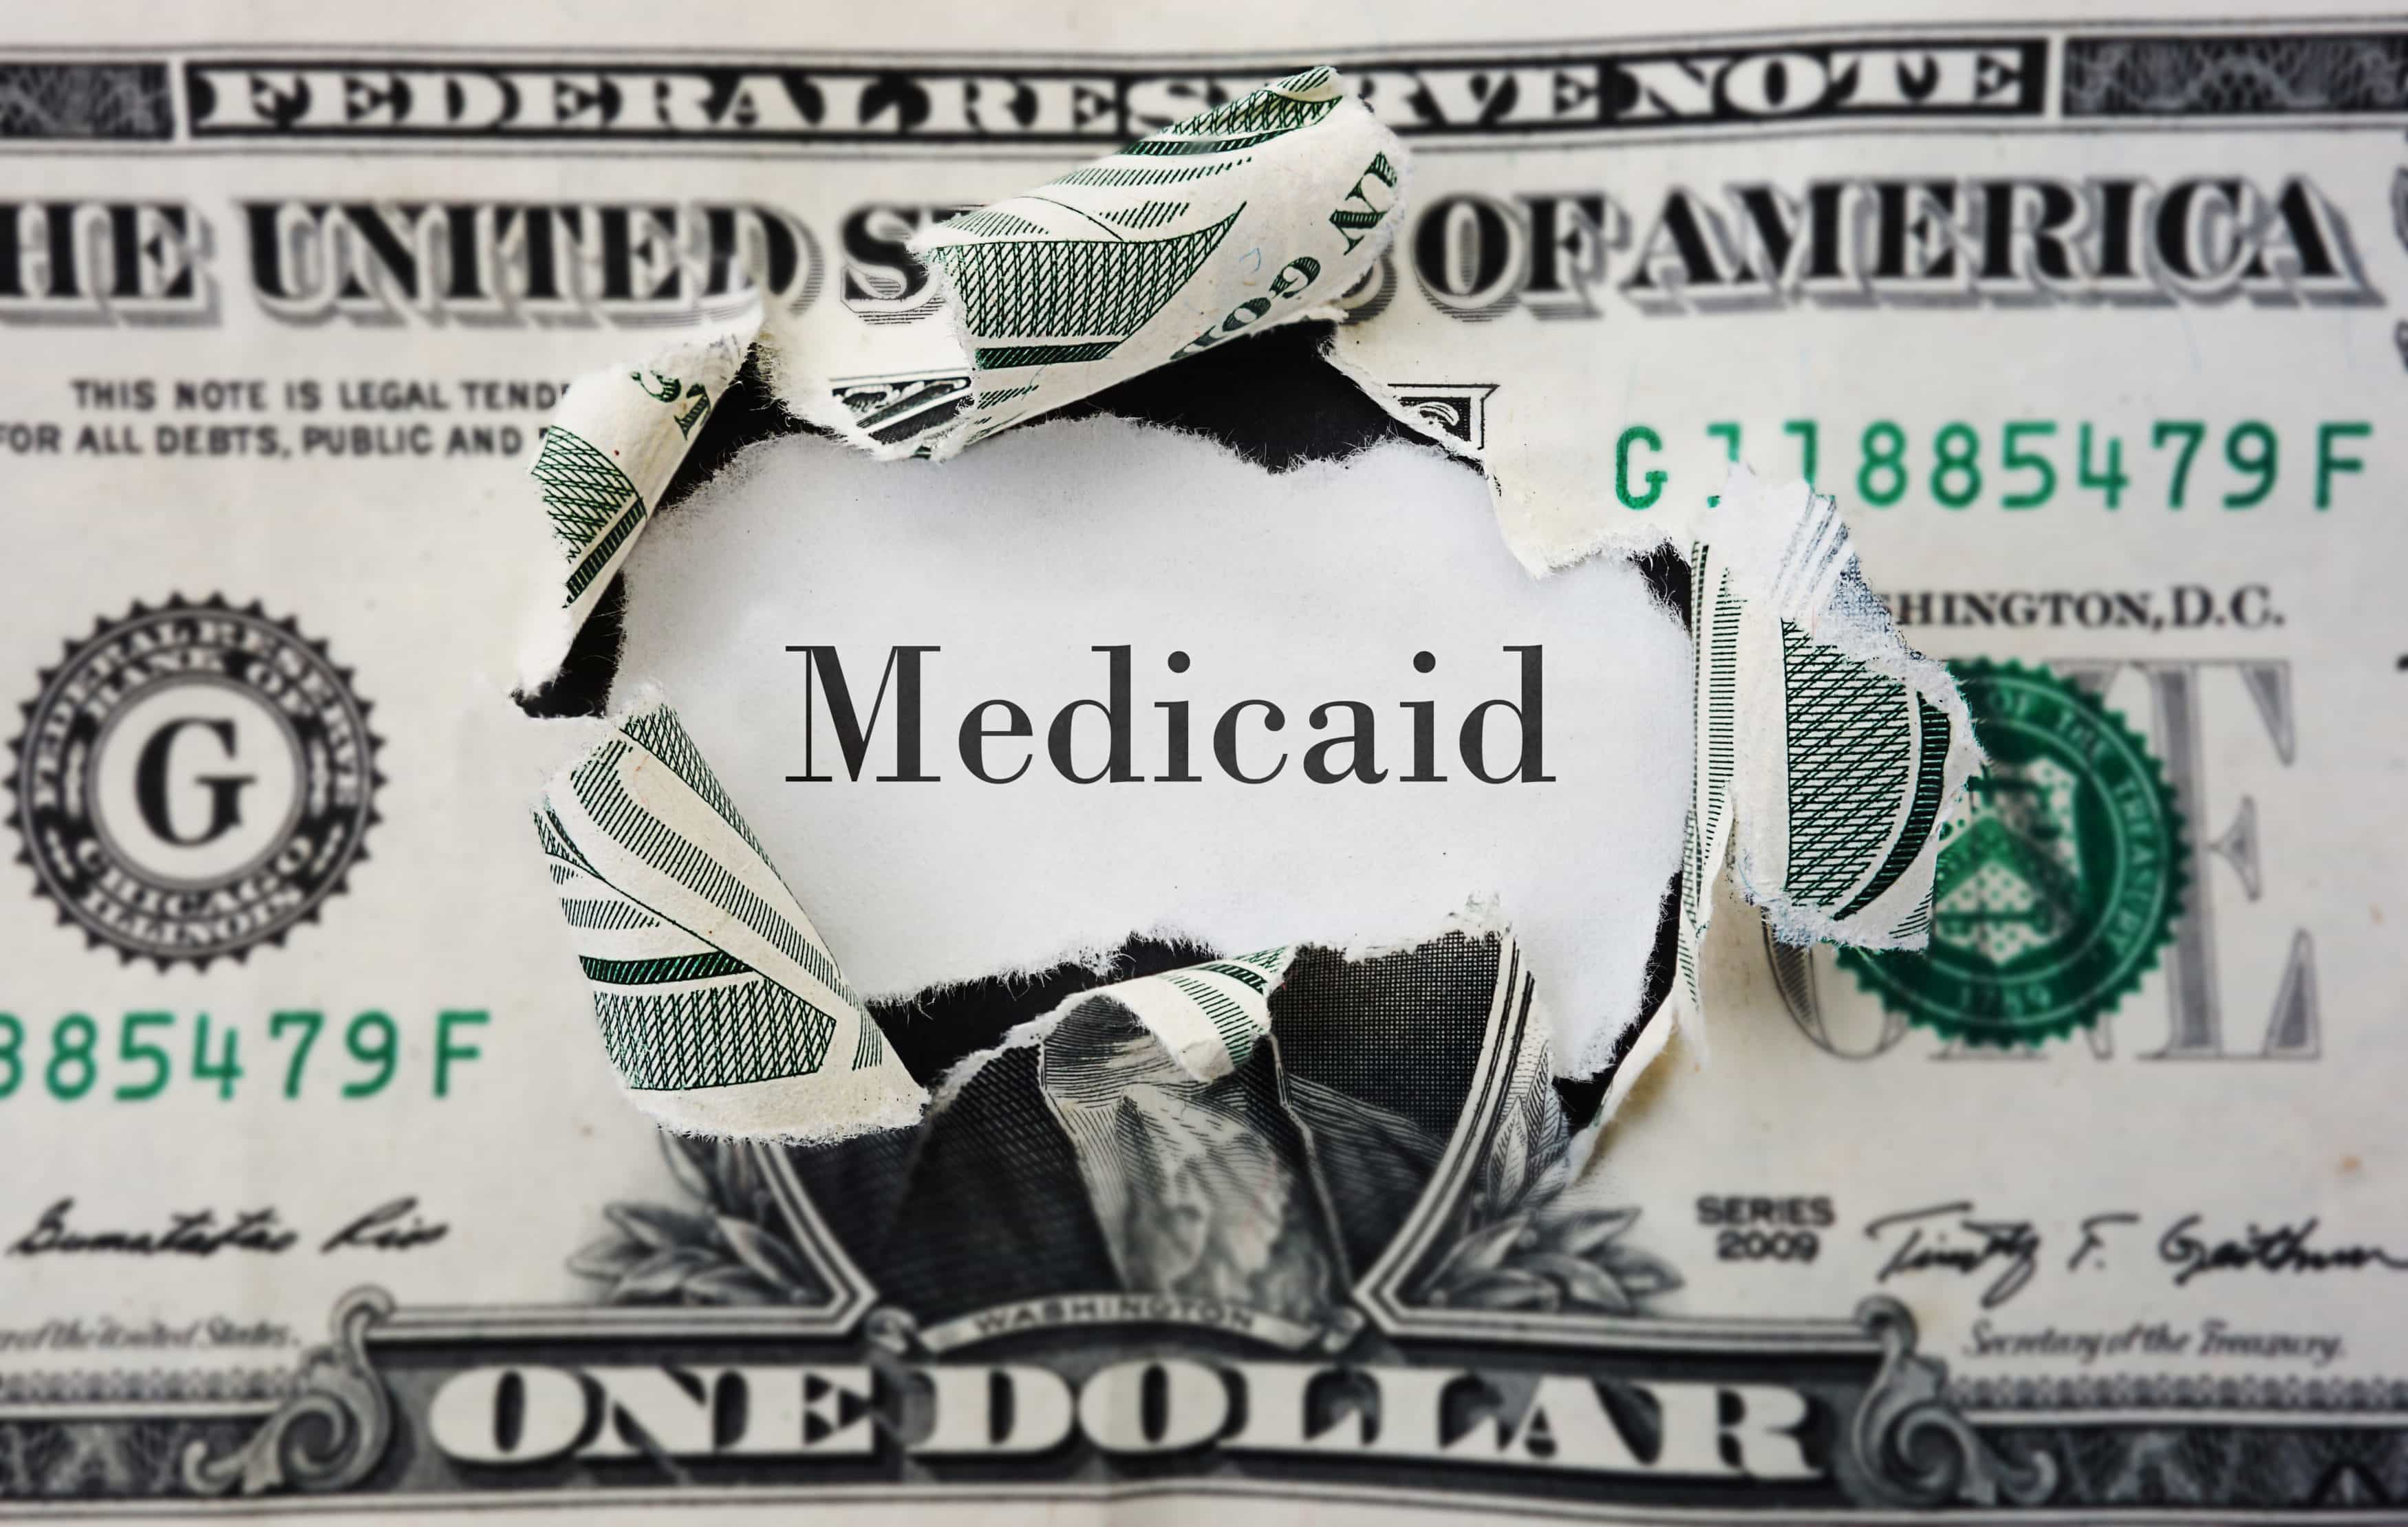 Medicaid costs